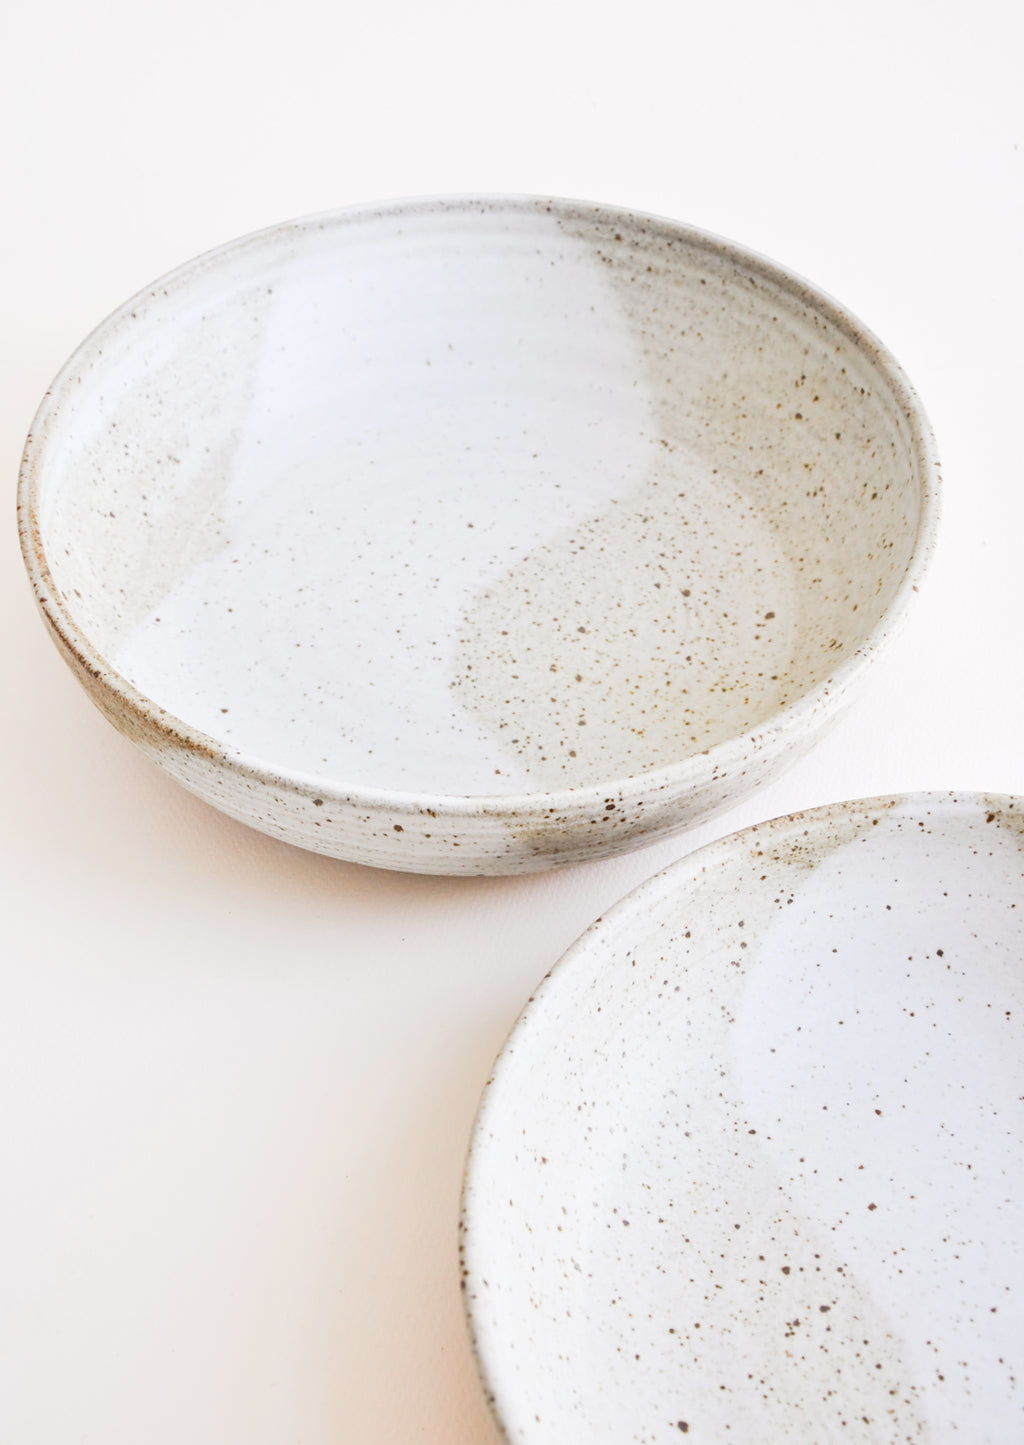 Rustic Ceramic Serving Bowl